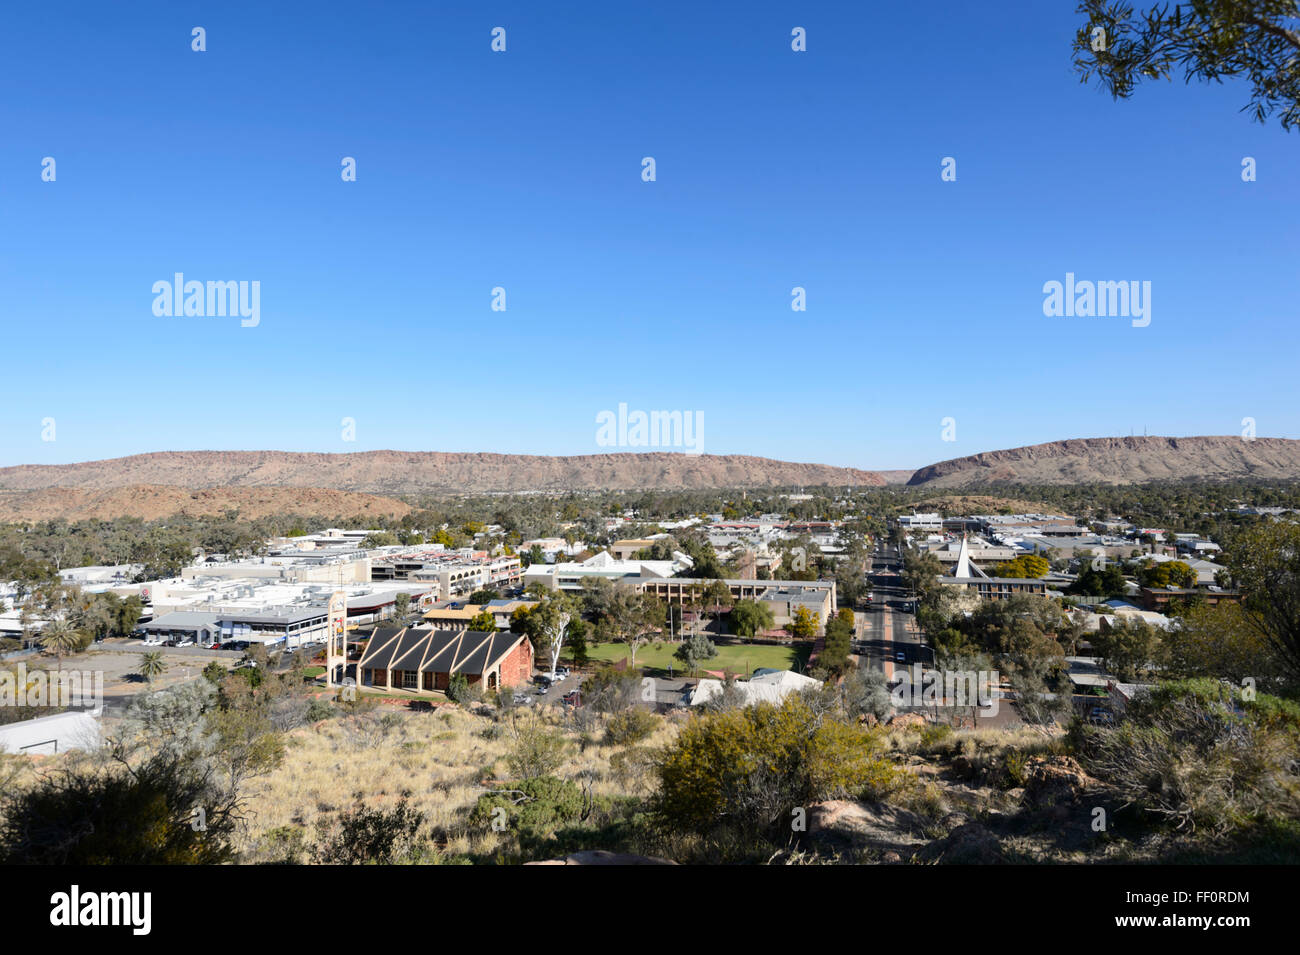 View of Alice Springs from Anzac Hill, Northern Territory, Australia - Stock Image